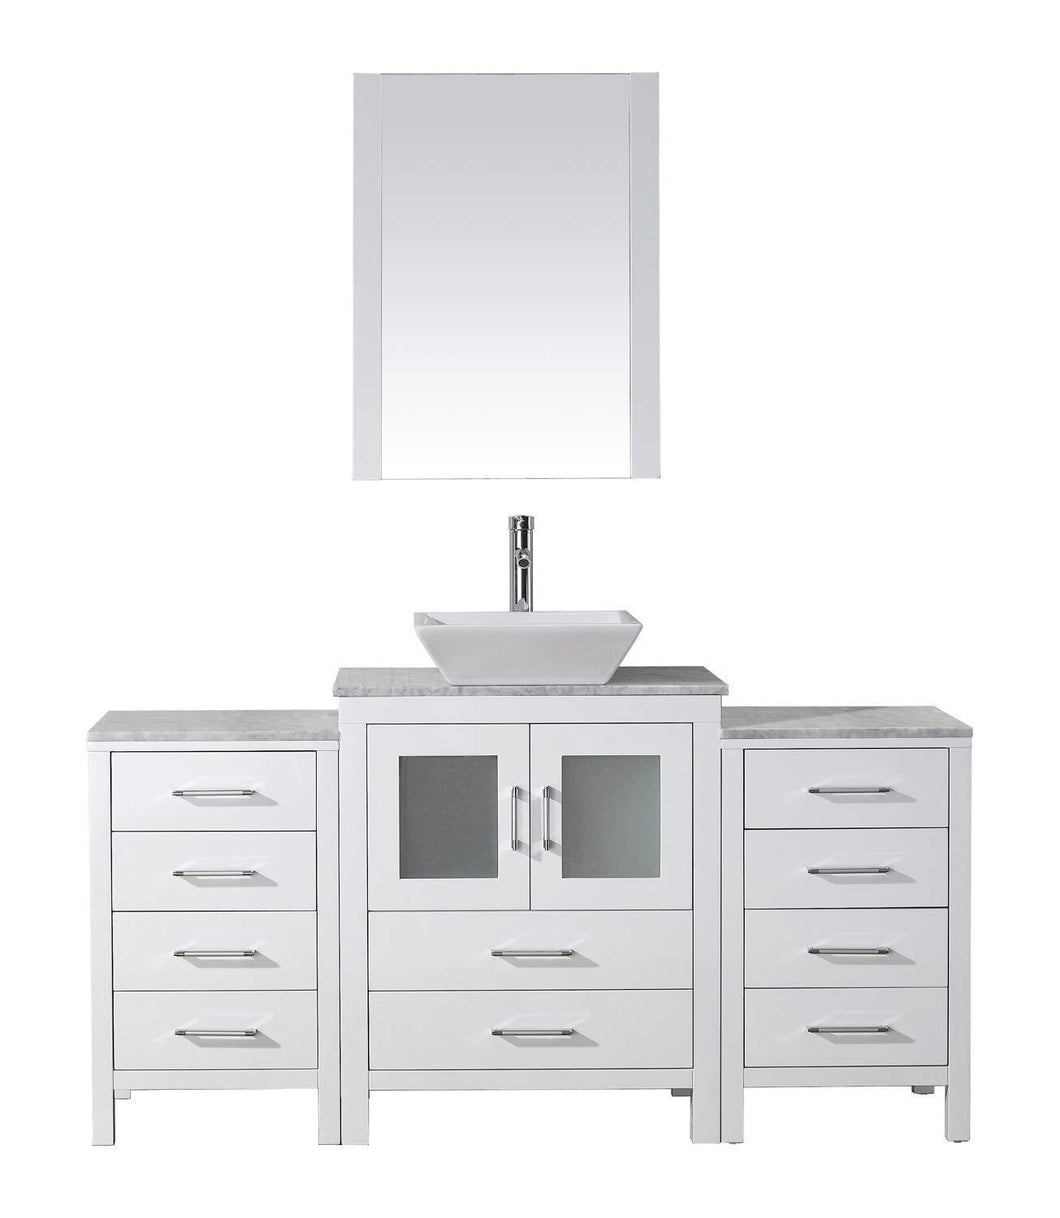 Amazon best virtu usa dior 60 inch single sink bathroom vanity set in white w square vessel sink italian carrara white marble countertop single hole polished chrome 1 mirror ks 70060 wm wh